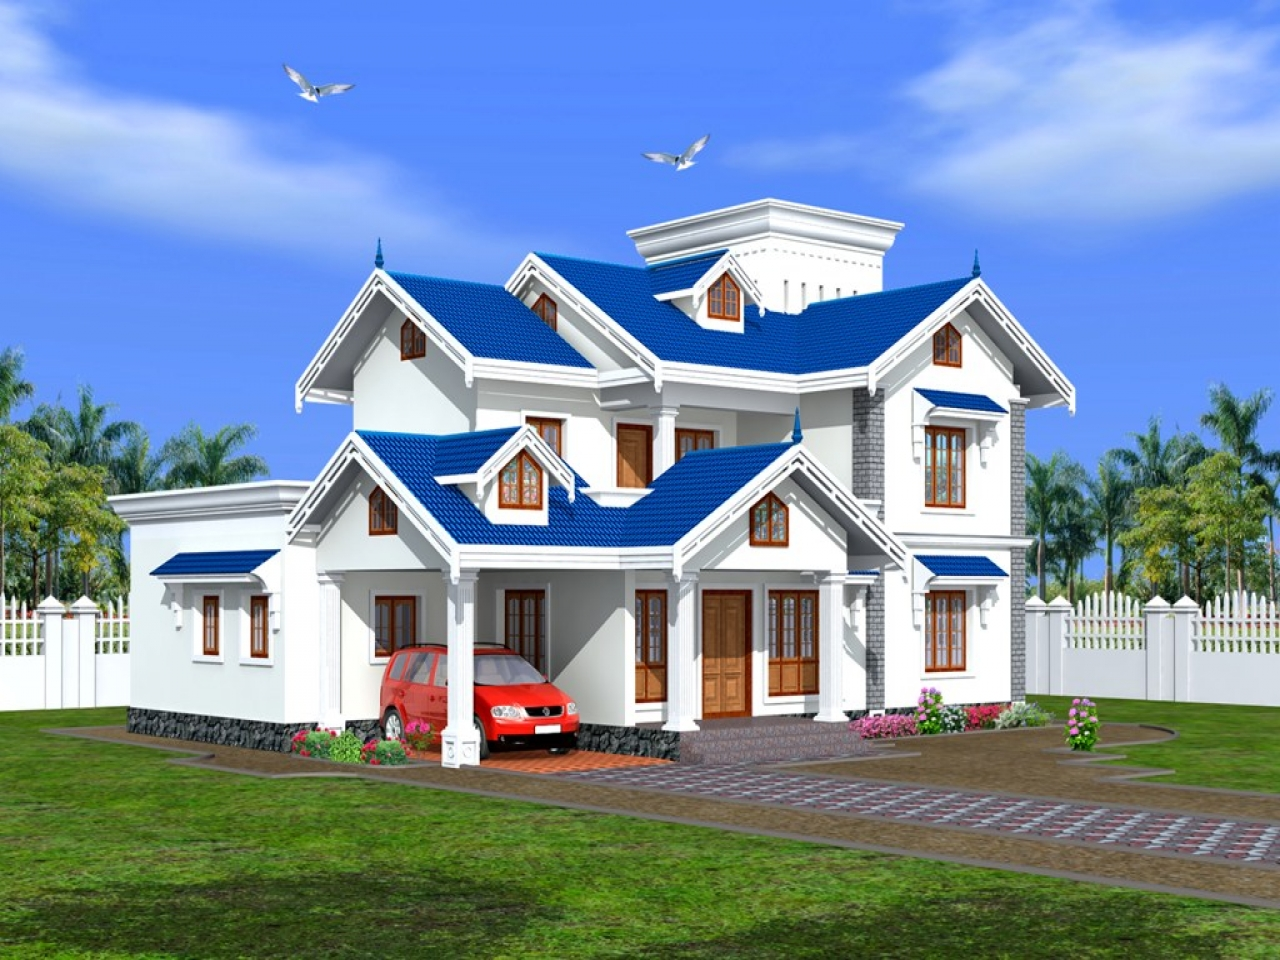 Simple bungalow house design philippines bungalow house for Bungalow house plans philippines